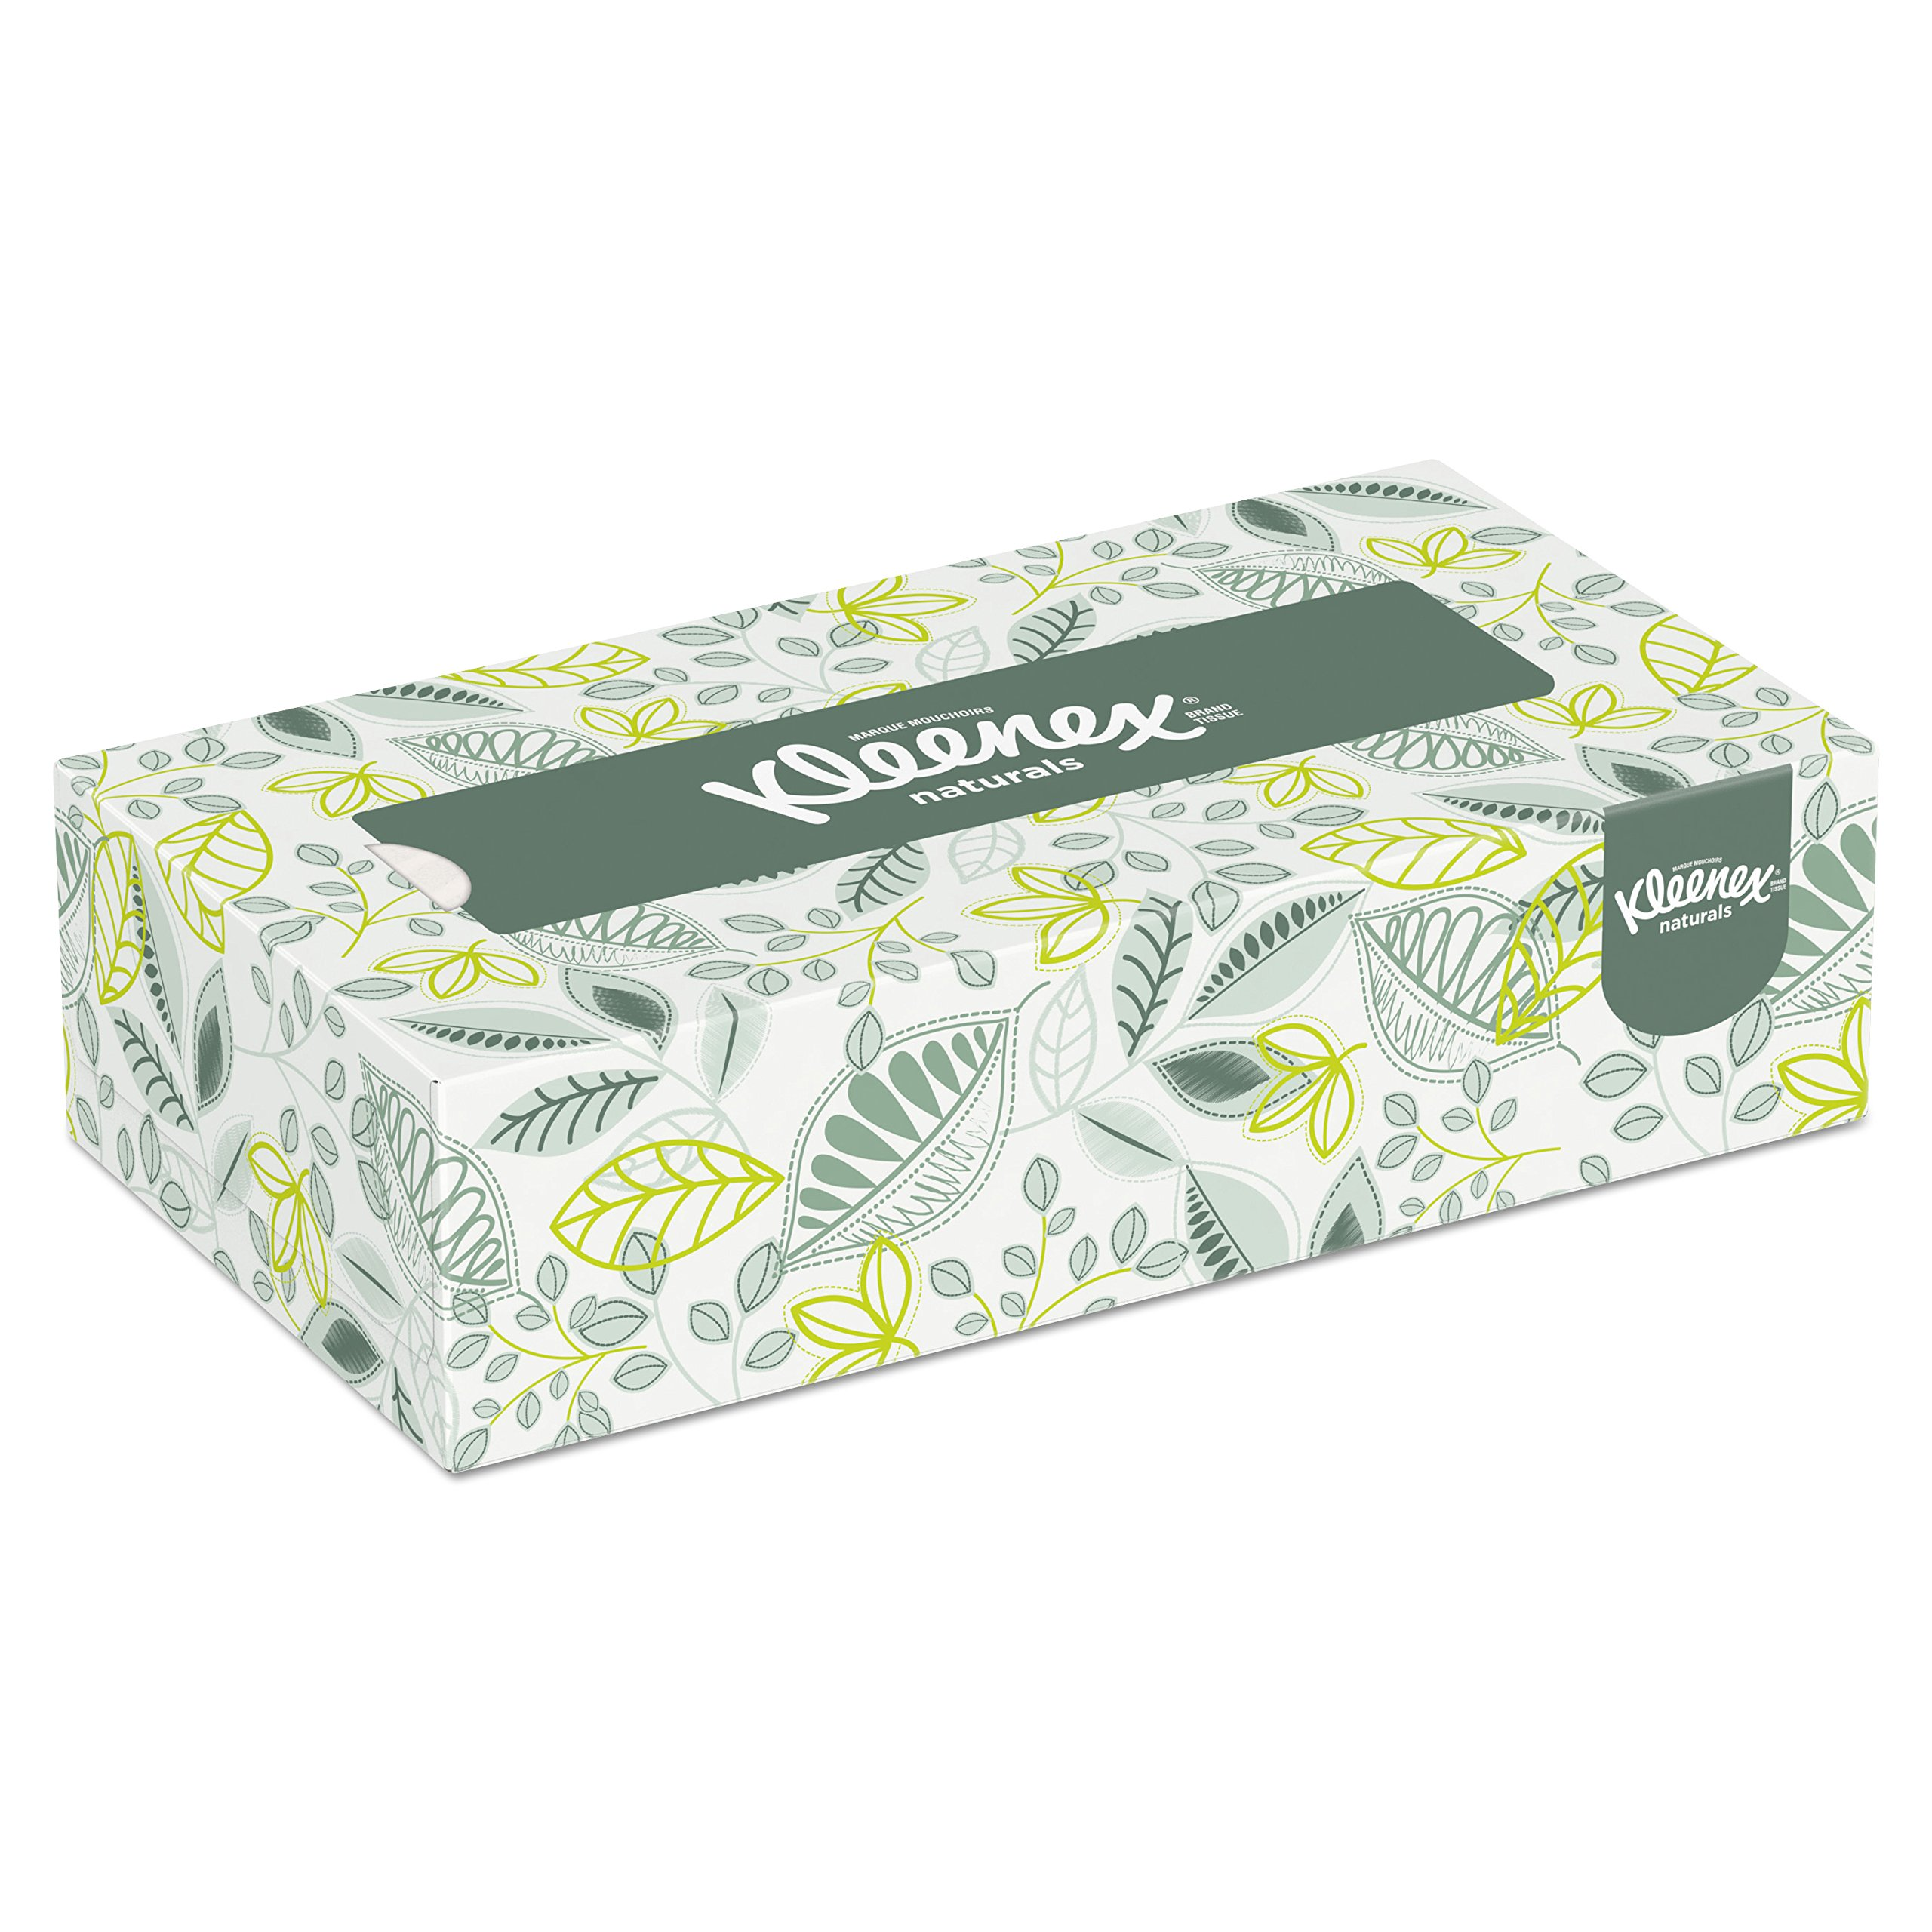 Kleenex Professional Naturals Facial Tissue for Business (21601), Flat Face Tissue Box, 2-PLY, 48 Boxes/Case, 125 Soft Sheets/Box, 6,000 Sheets/Case